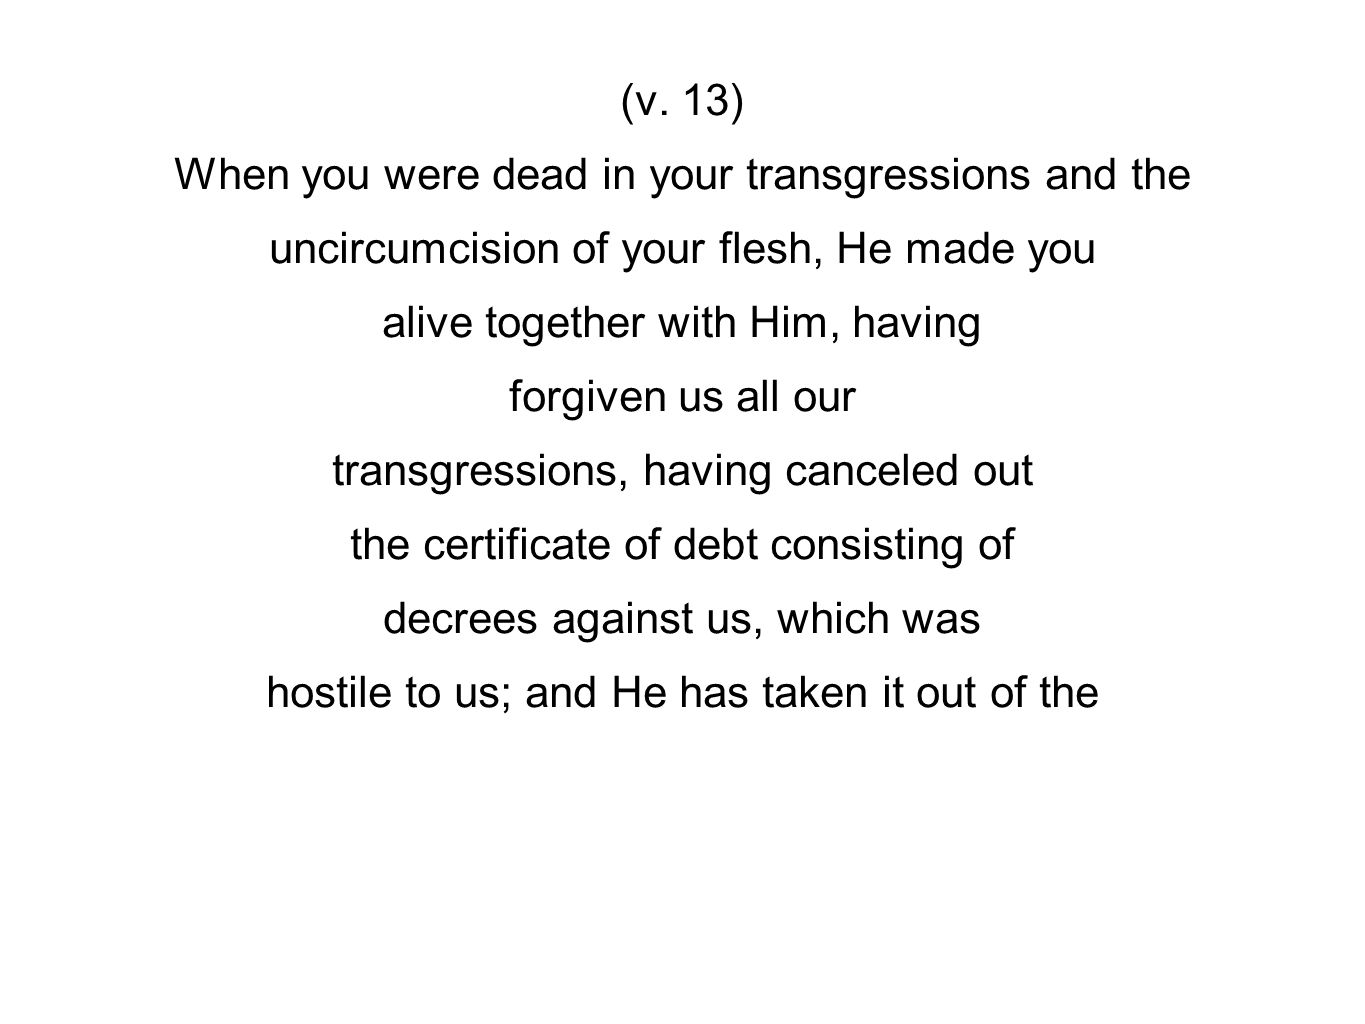 (v. 13) When you were dead in your transgressions and the uncircumcision of your flesh, He made you alive together with Him, having forgiven us all ou